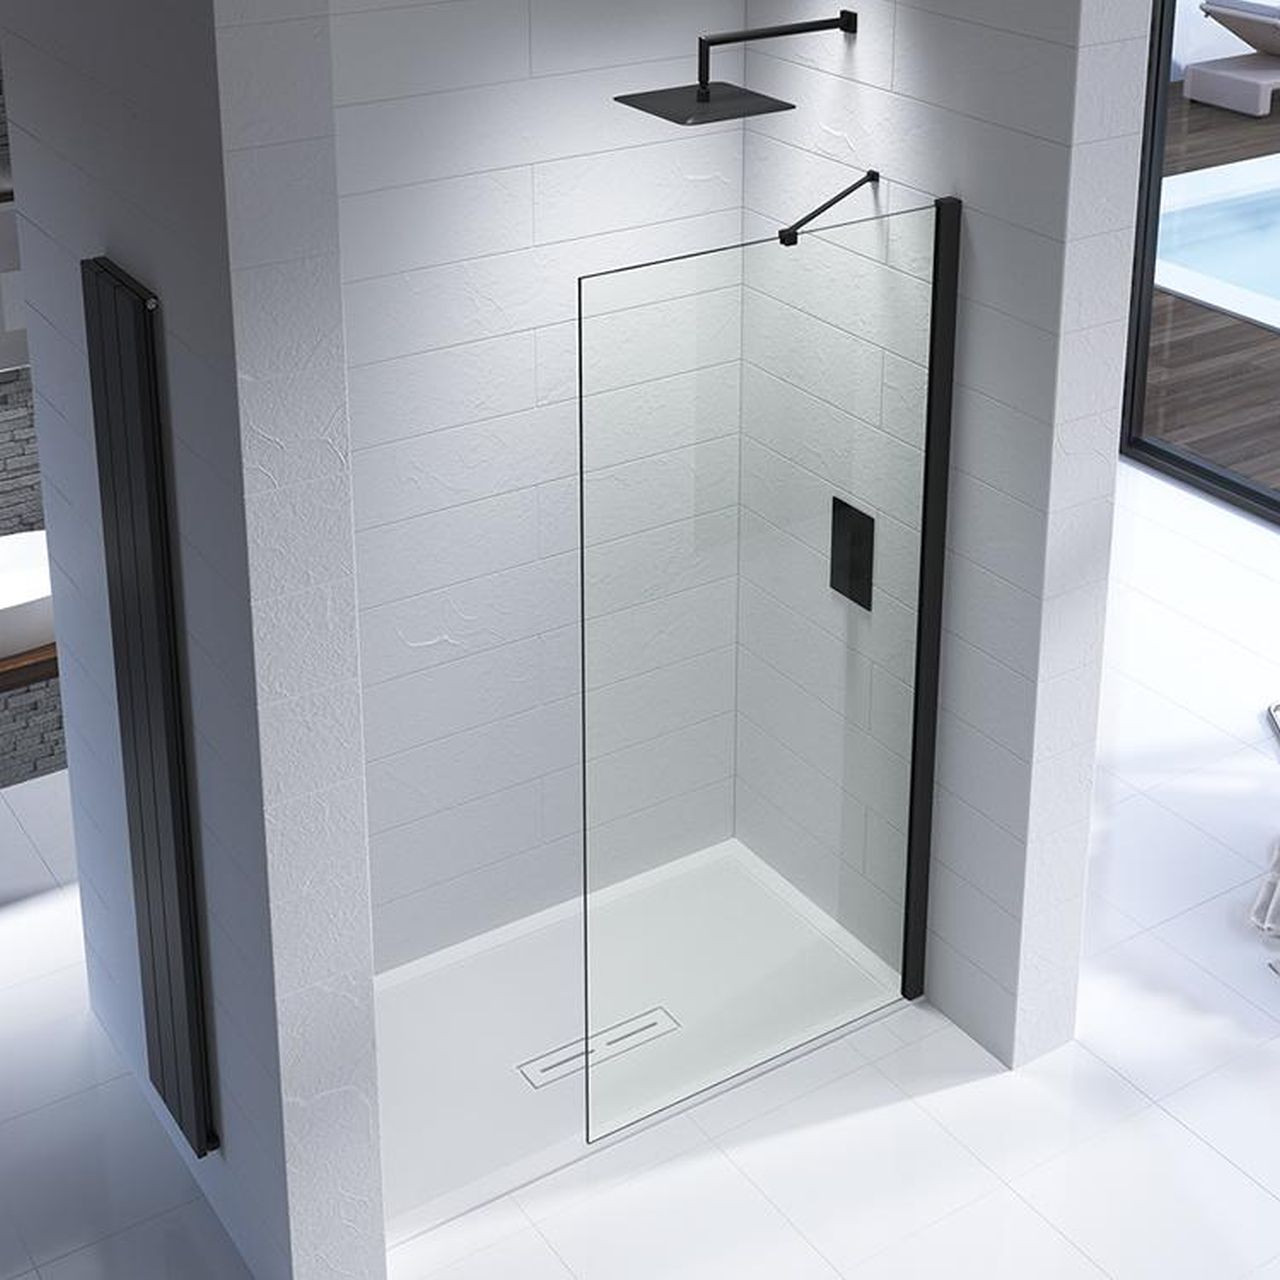 Kudos Ultimate Black 10mm 1500mm x 800mm Complete Recess Walk In Shower Enclosure - U10RP1580MBK